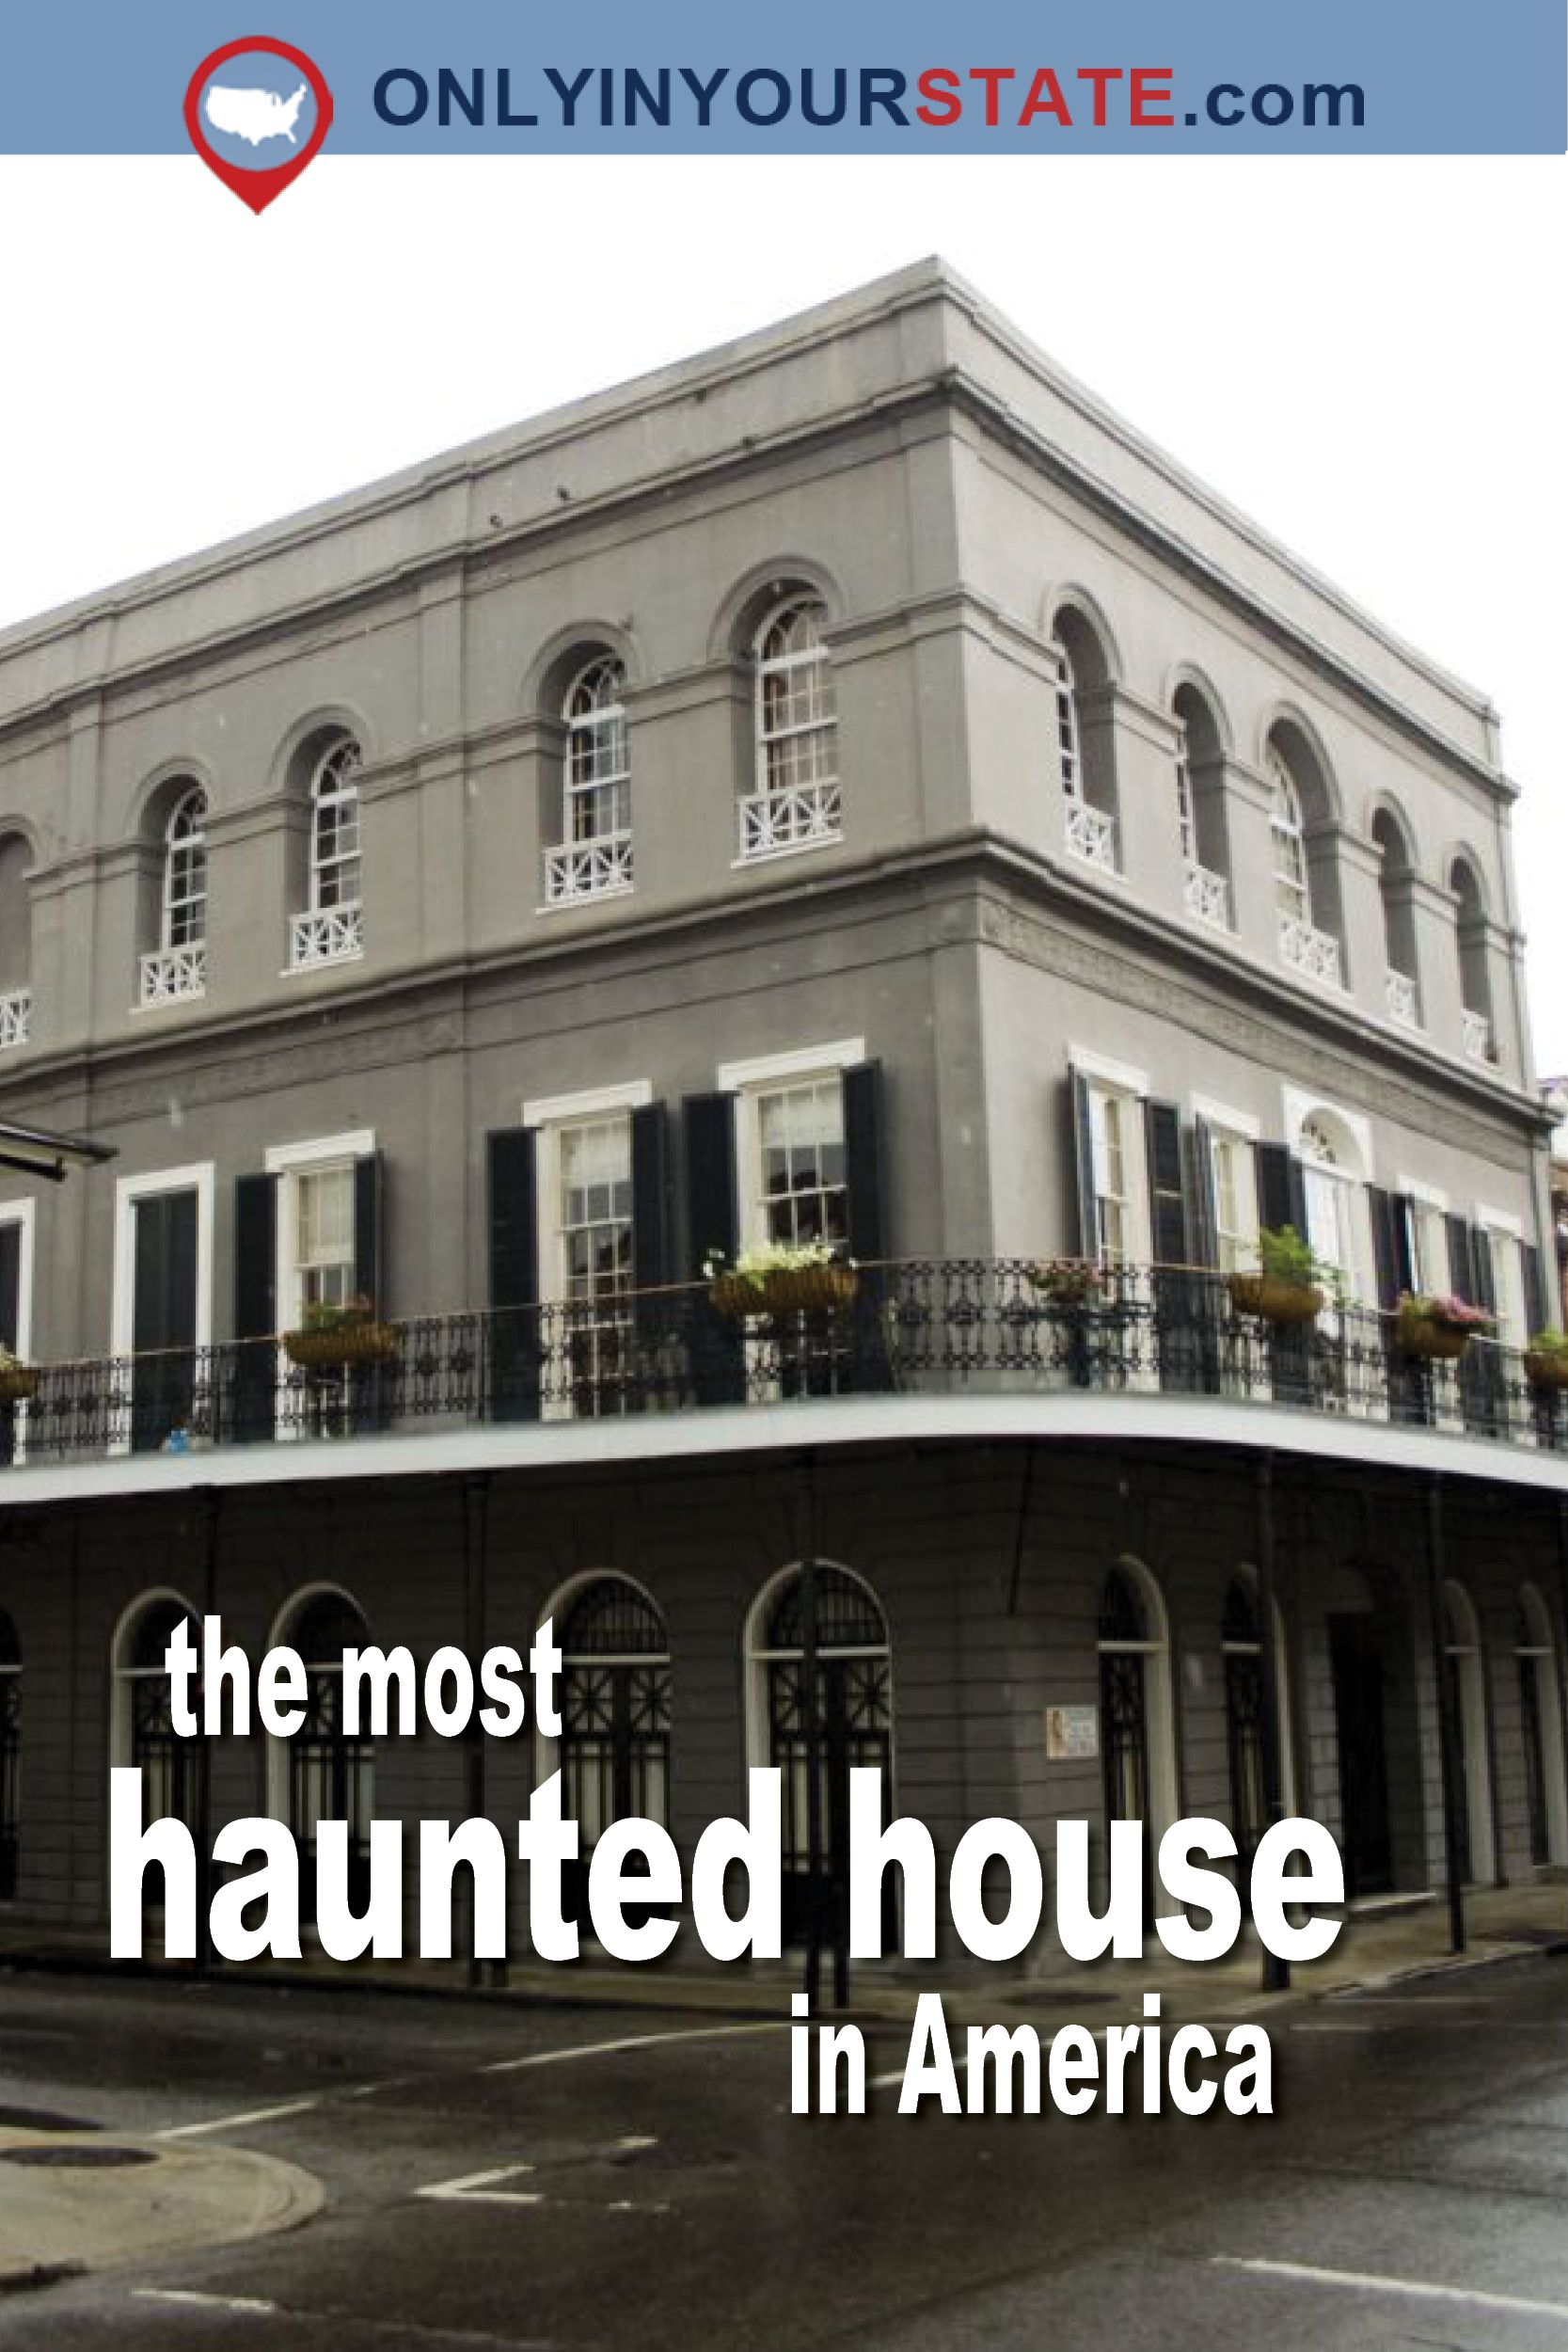 The Story Behind The Most Haunted House In America Will Give You ...